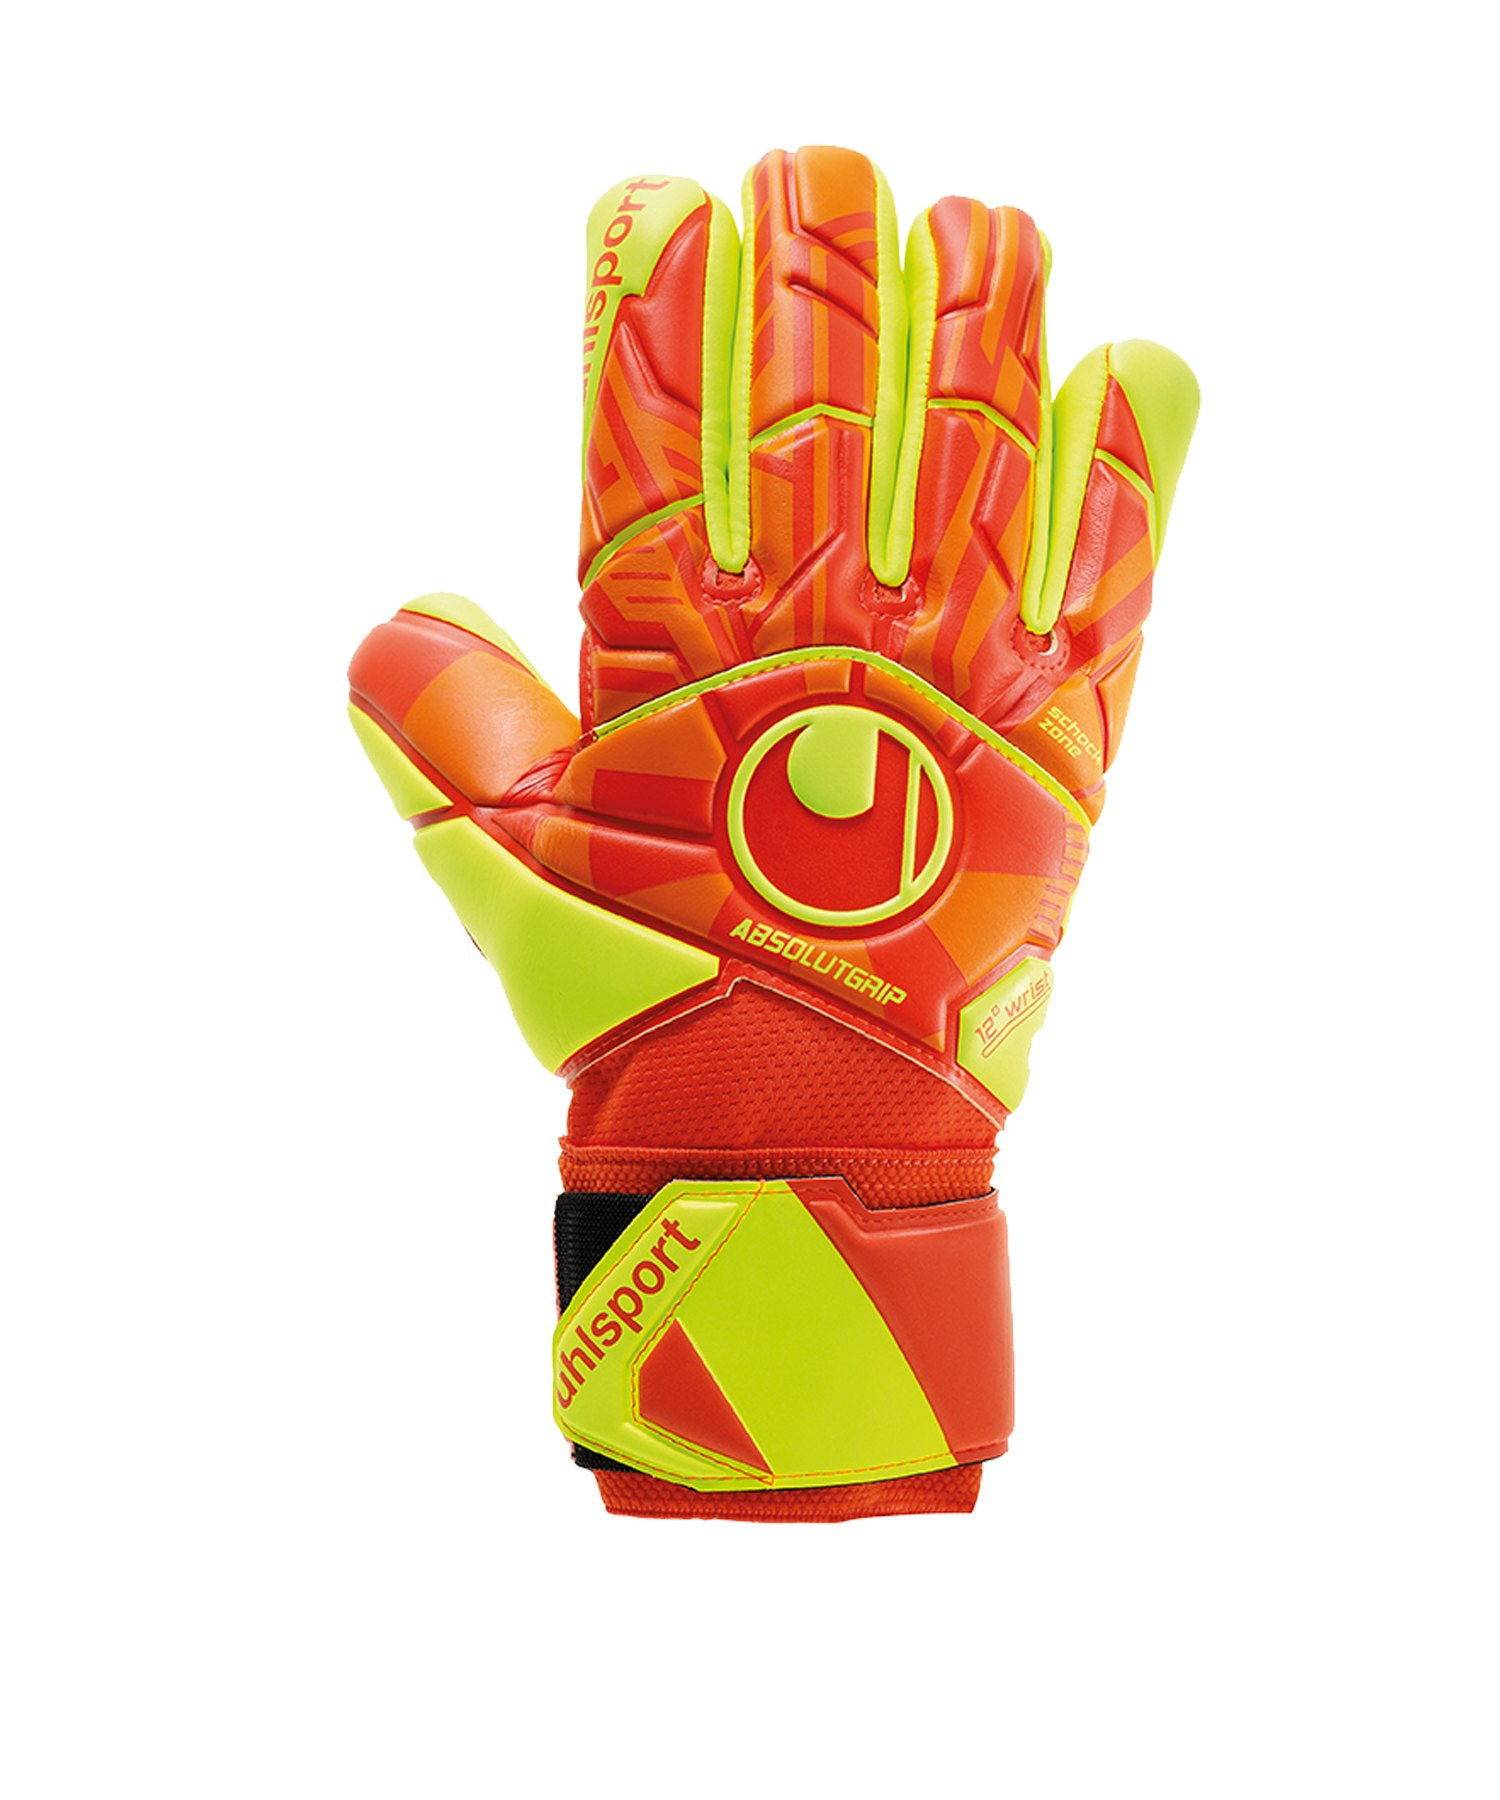 Uhlsport Dyn. Impulse Absolutgrip TW-Handschuh F01 - orange